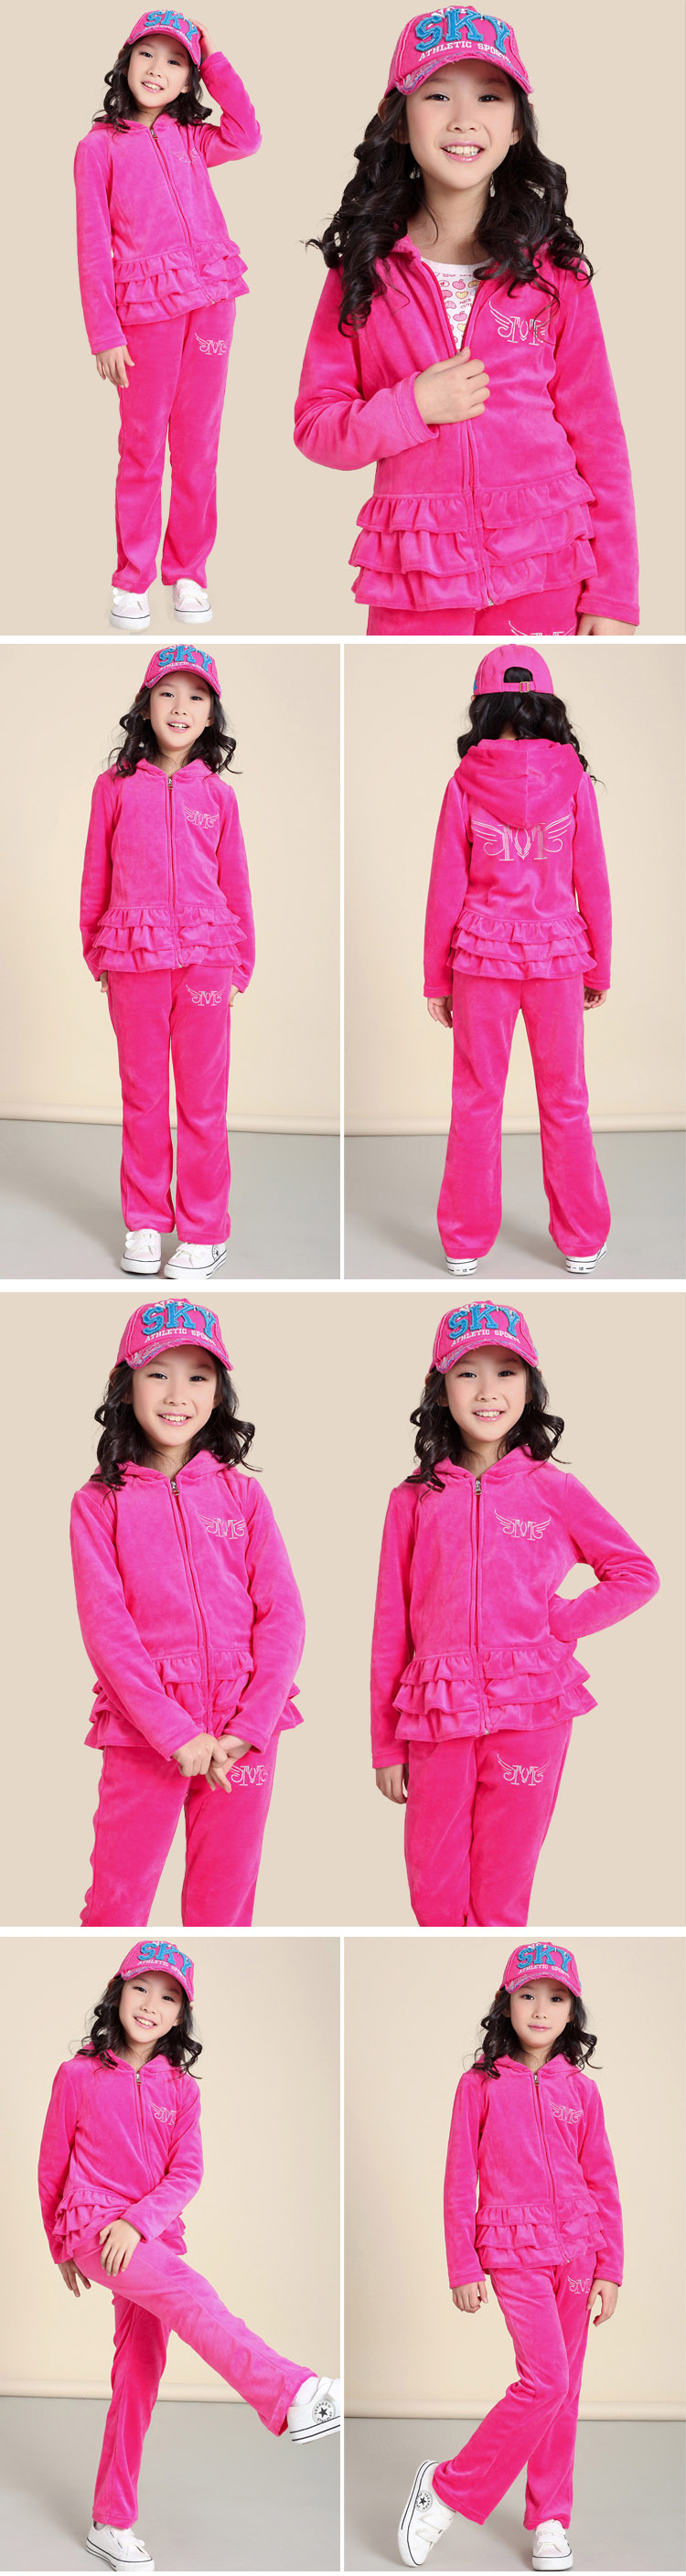 Baoyeah 2013 spring girls velvet set ruffles Cardigan sports set girls boys suits